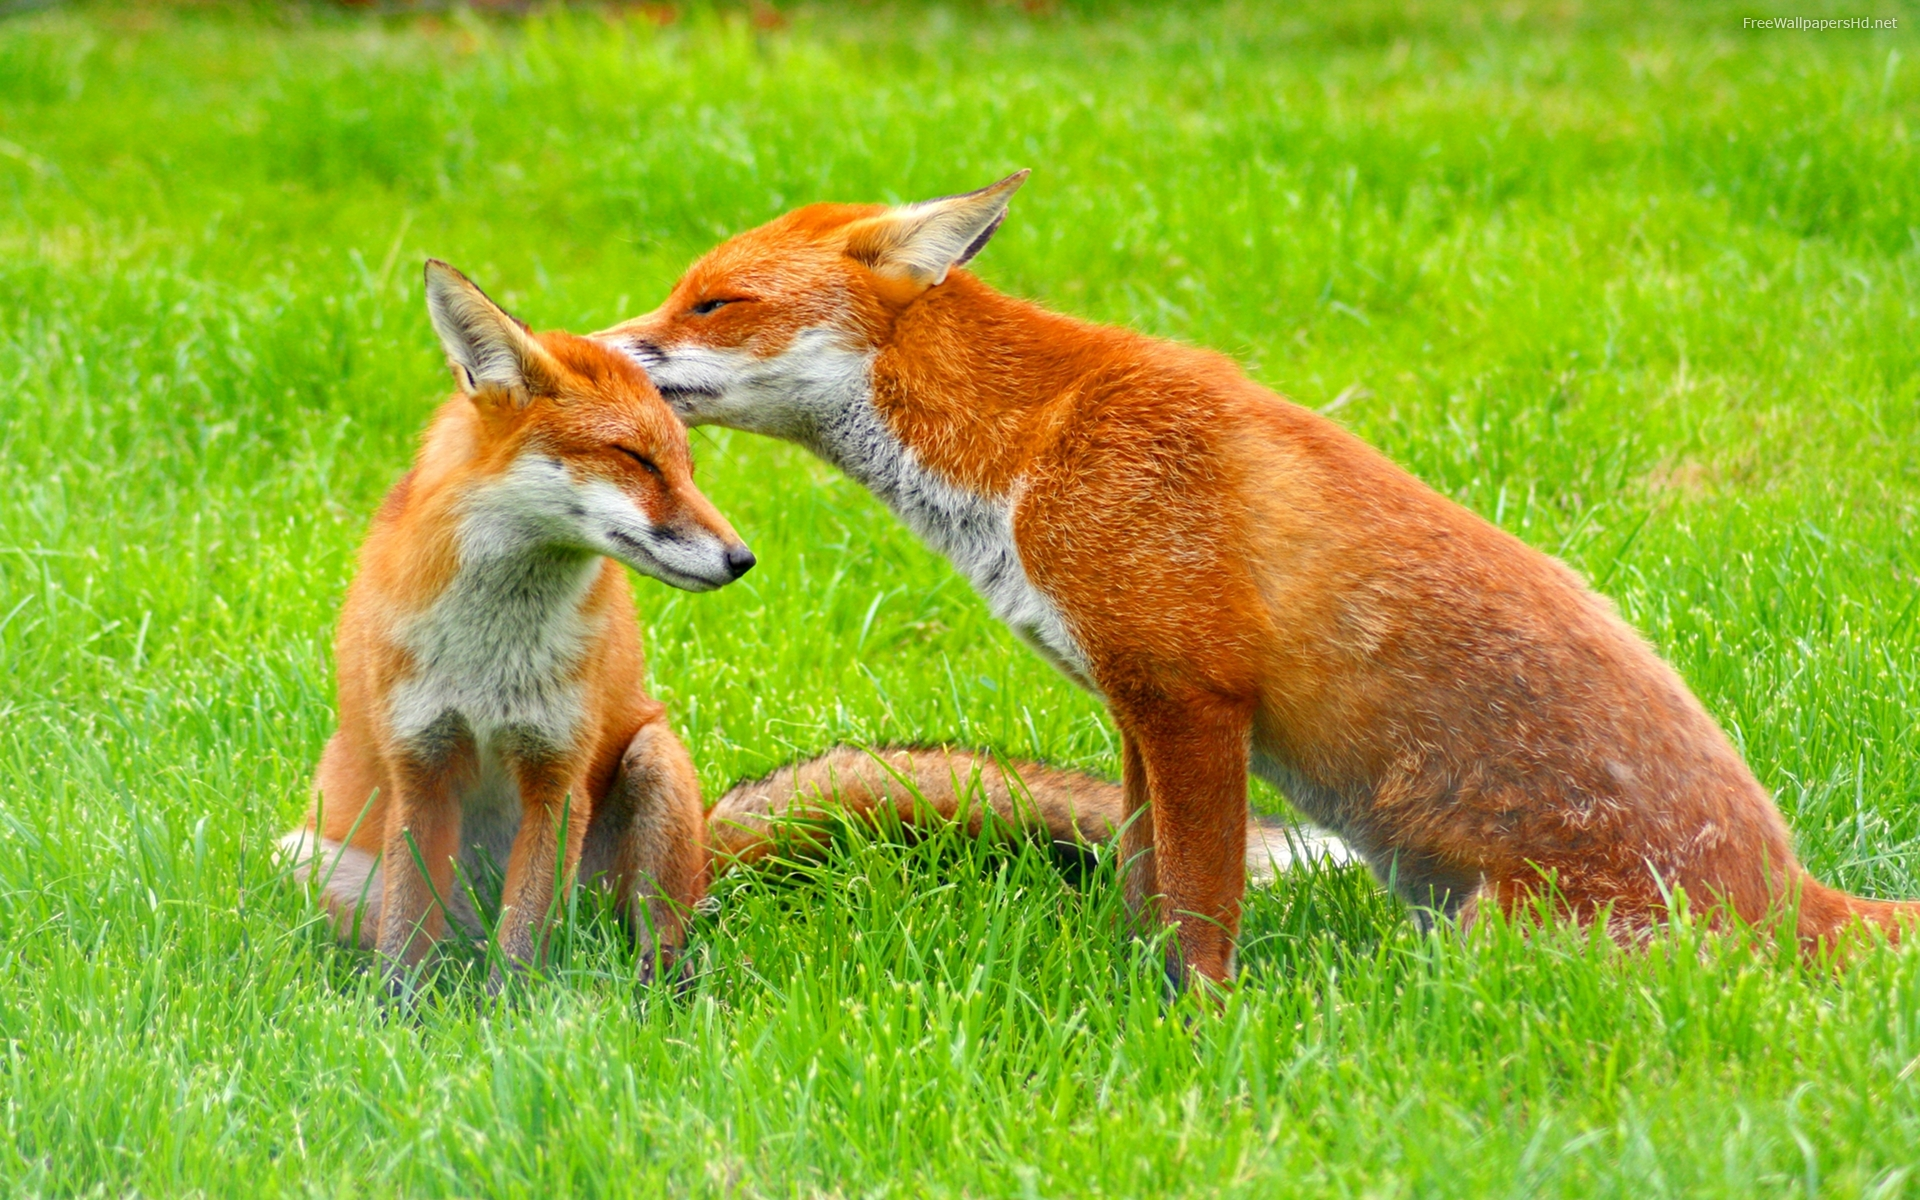 DOWNLOAD: red-fox-wallpapers-free-picture free picture 2560 x 1600